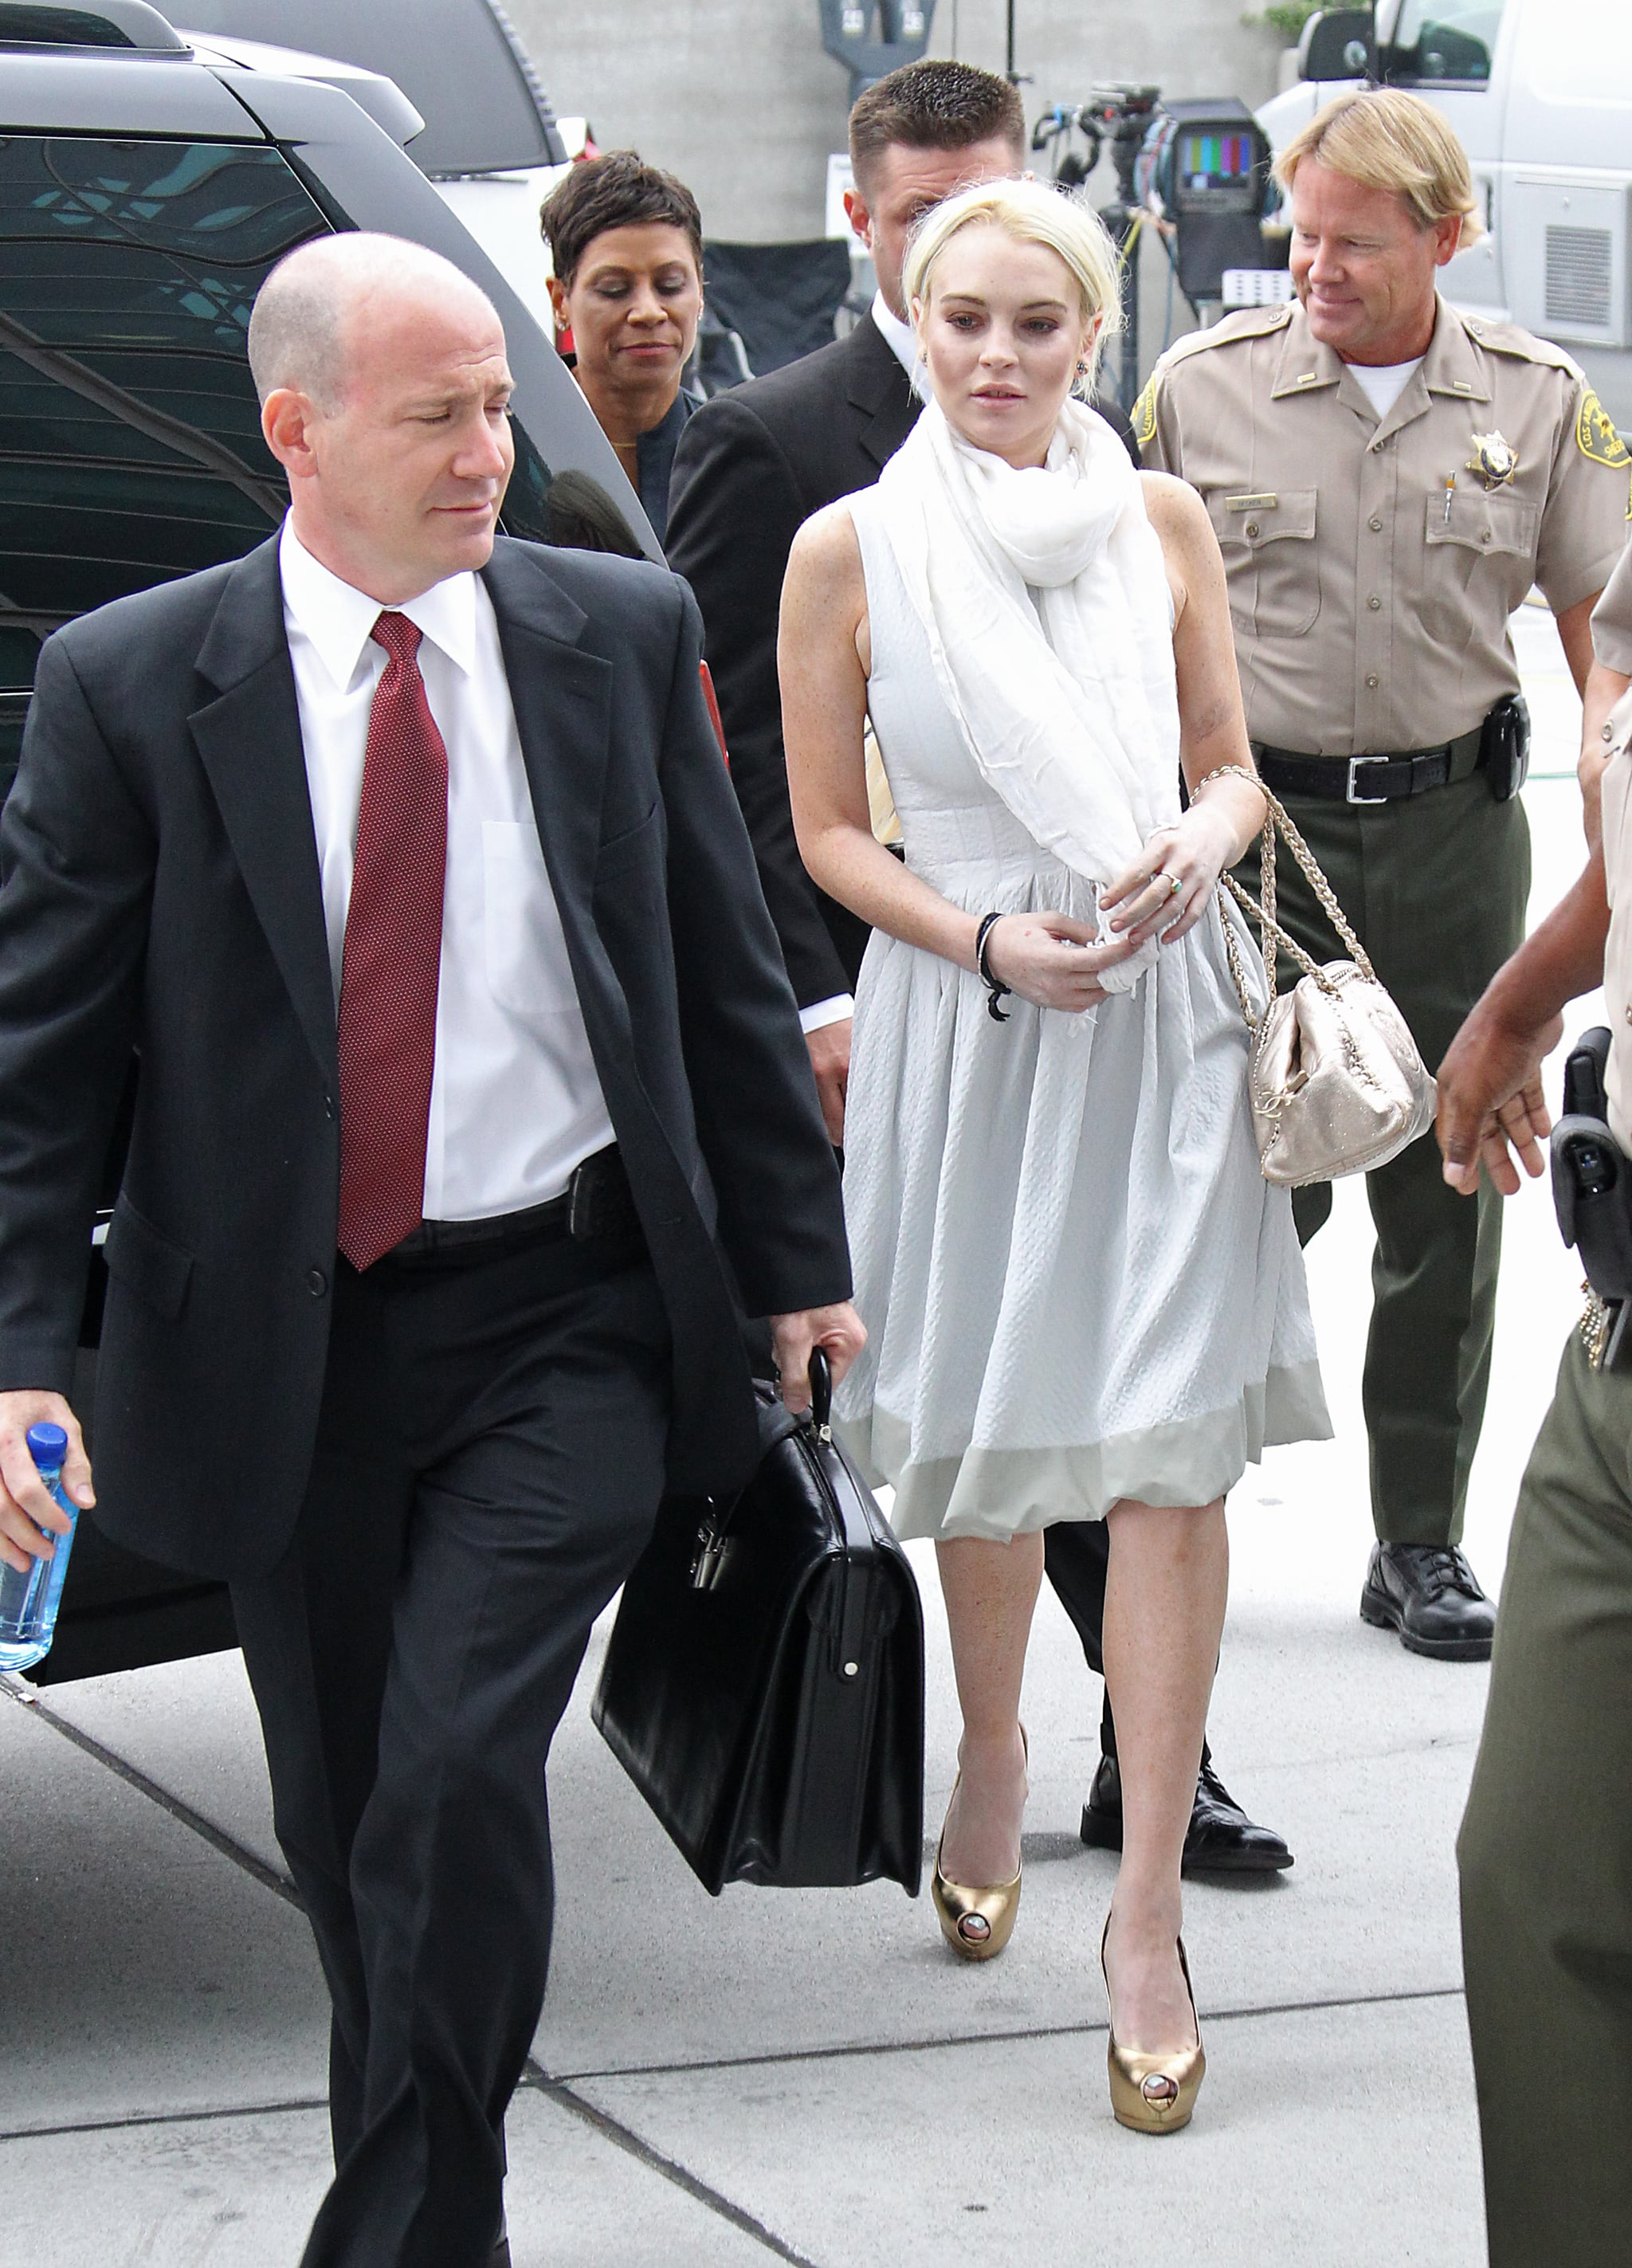 Lindsay Lohan walked into a courthouse in LA.